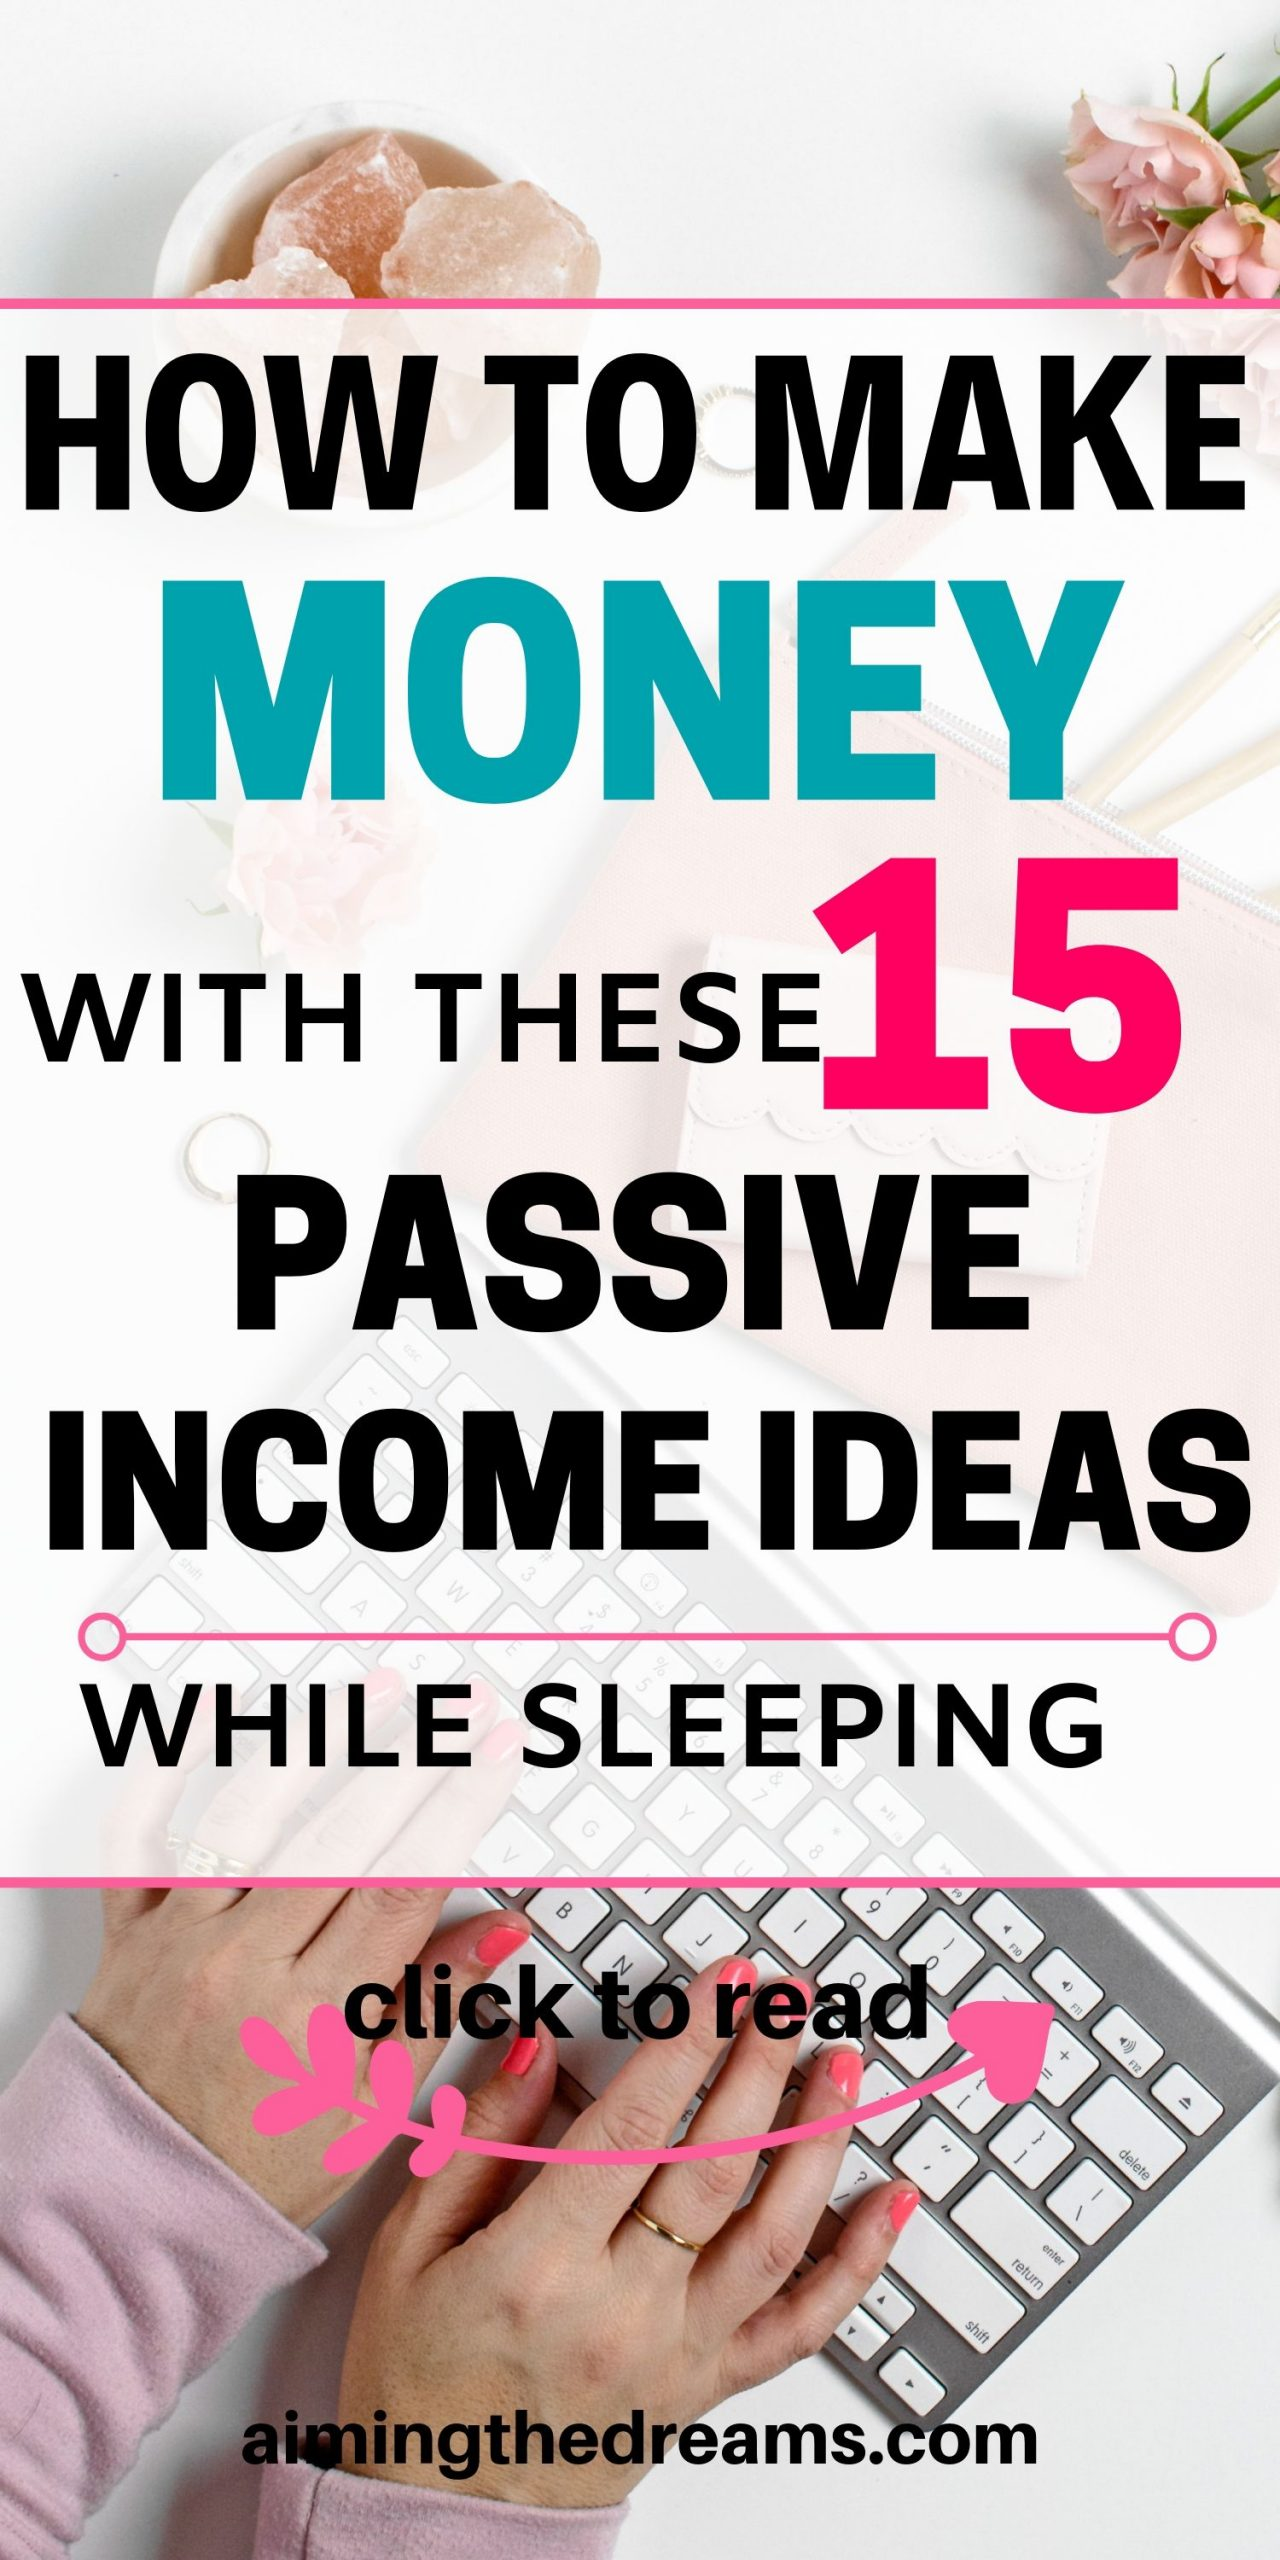 How to make money with passive income ideas while sleeping. Passive income generated with side hustles and investments is really good to grow wealth